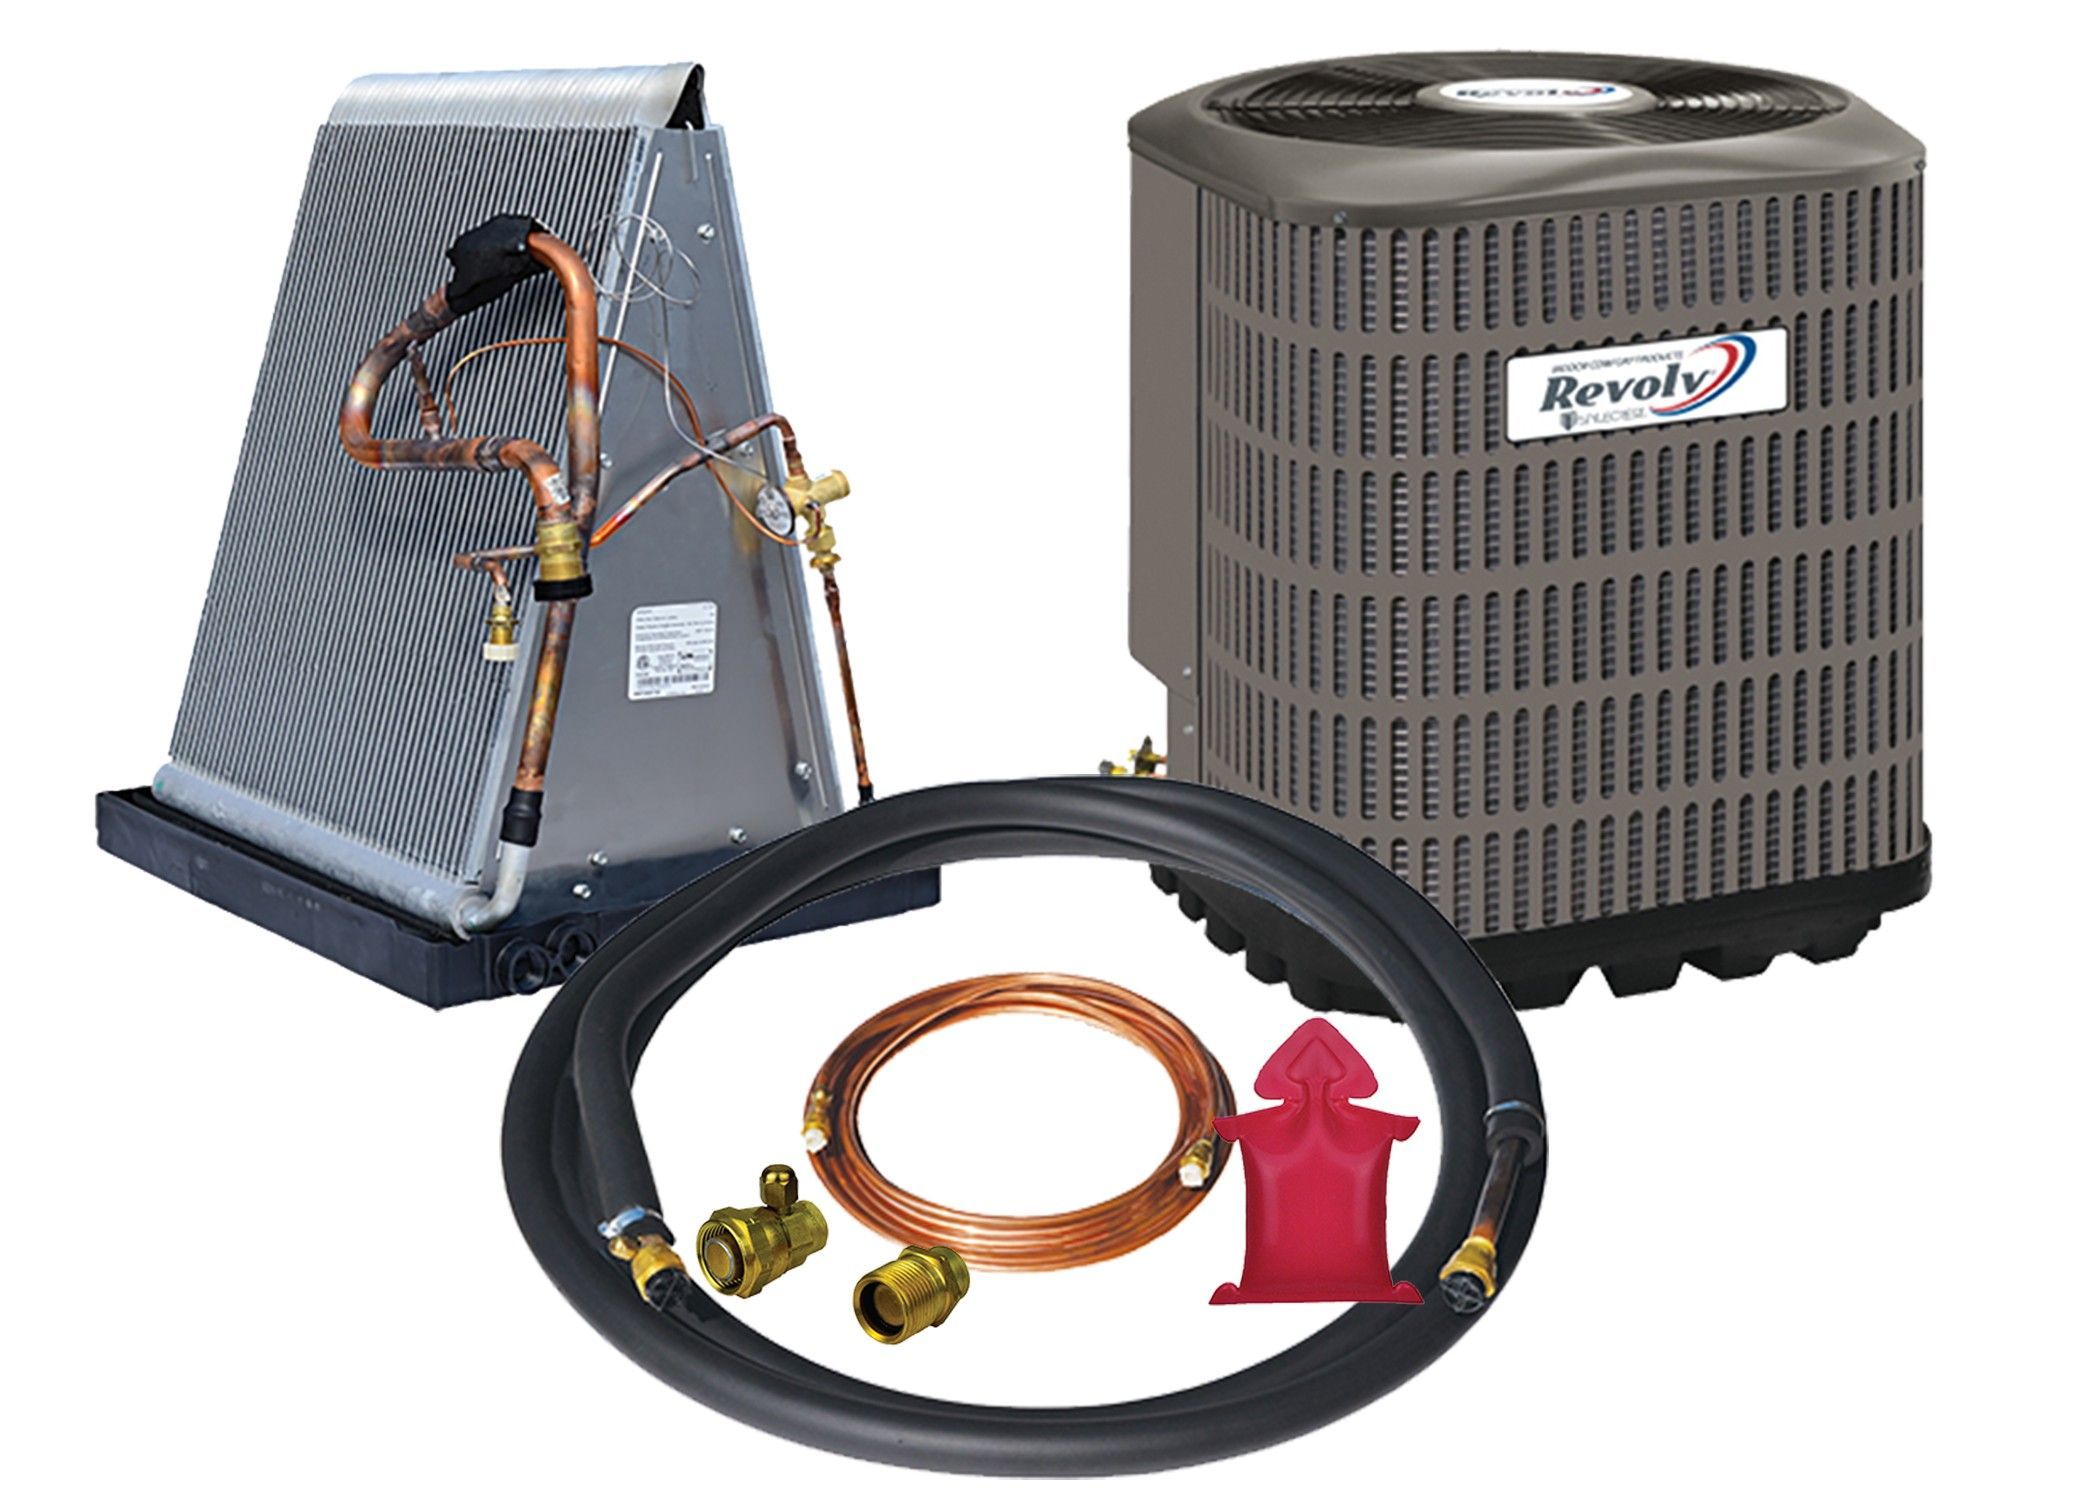 Revolv 2.5 Ton Heat Pump System Add On To Existing Furnace